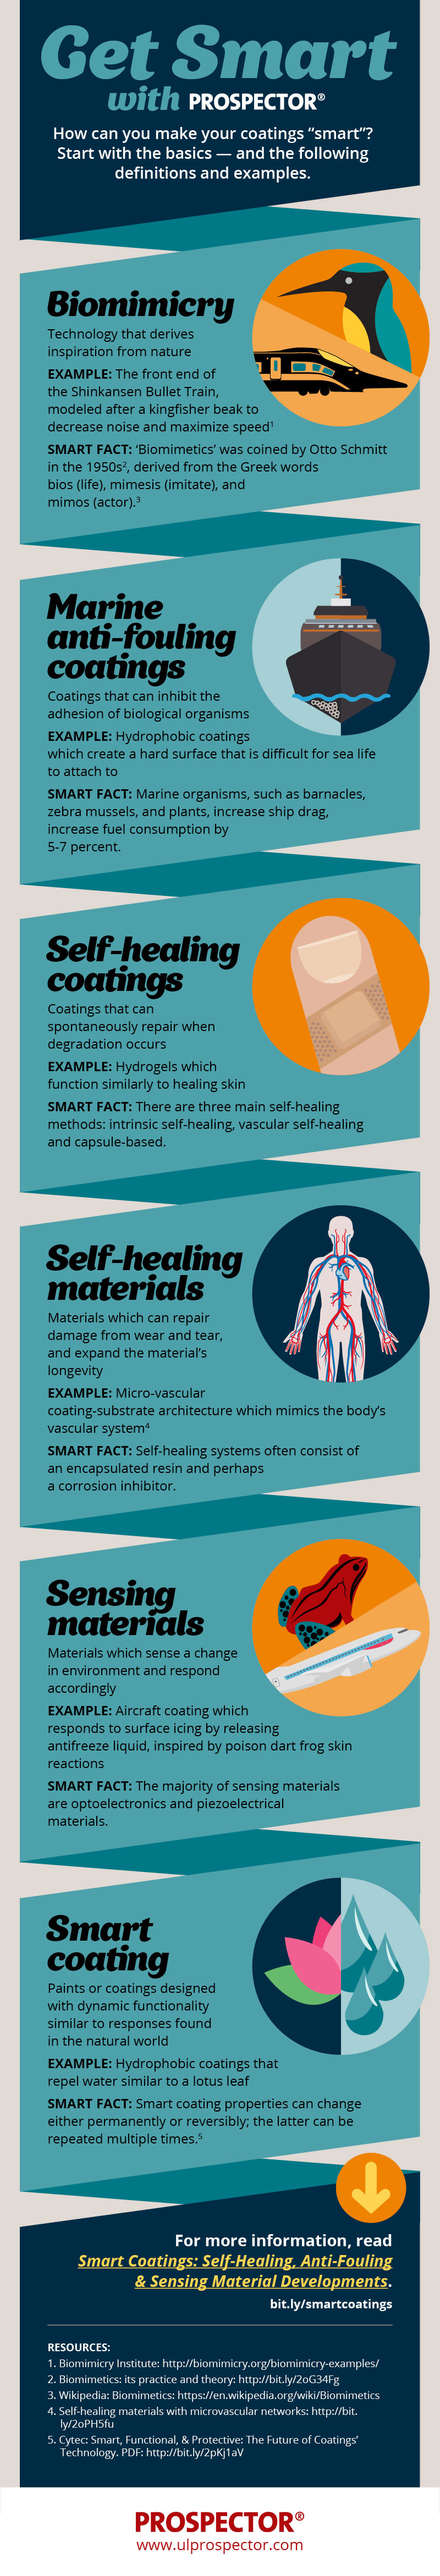 Smart Coatings glossary - this infographic explains some of the core concepts critical to the formulation of coatings that adjust and adapt to their environment. Learn more in the Prospector Knowledge Center.